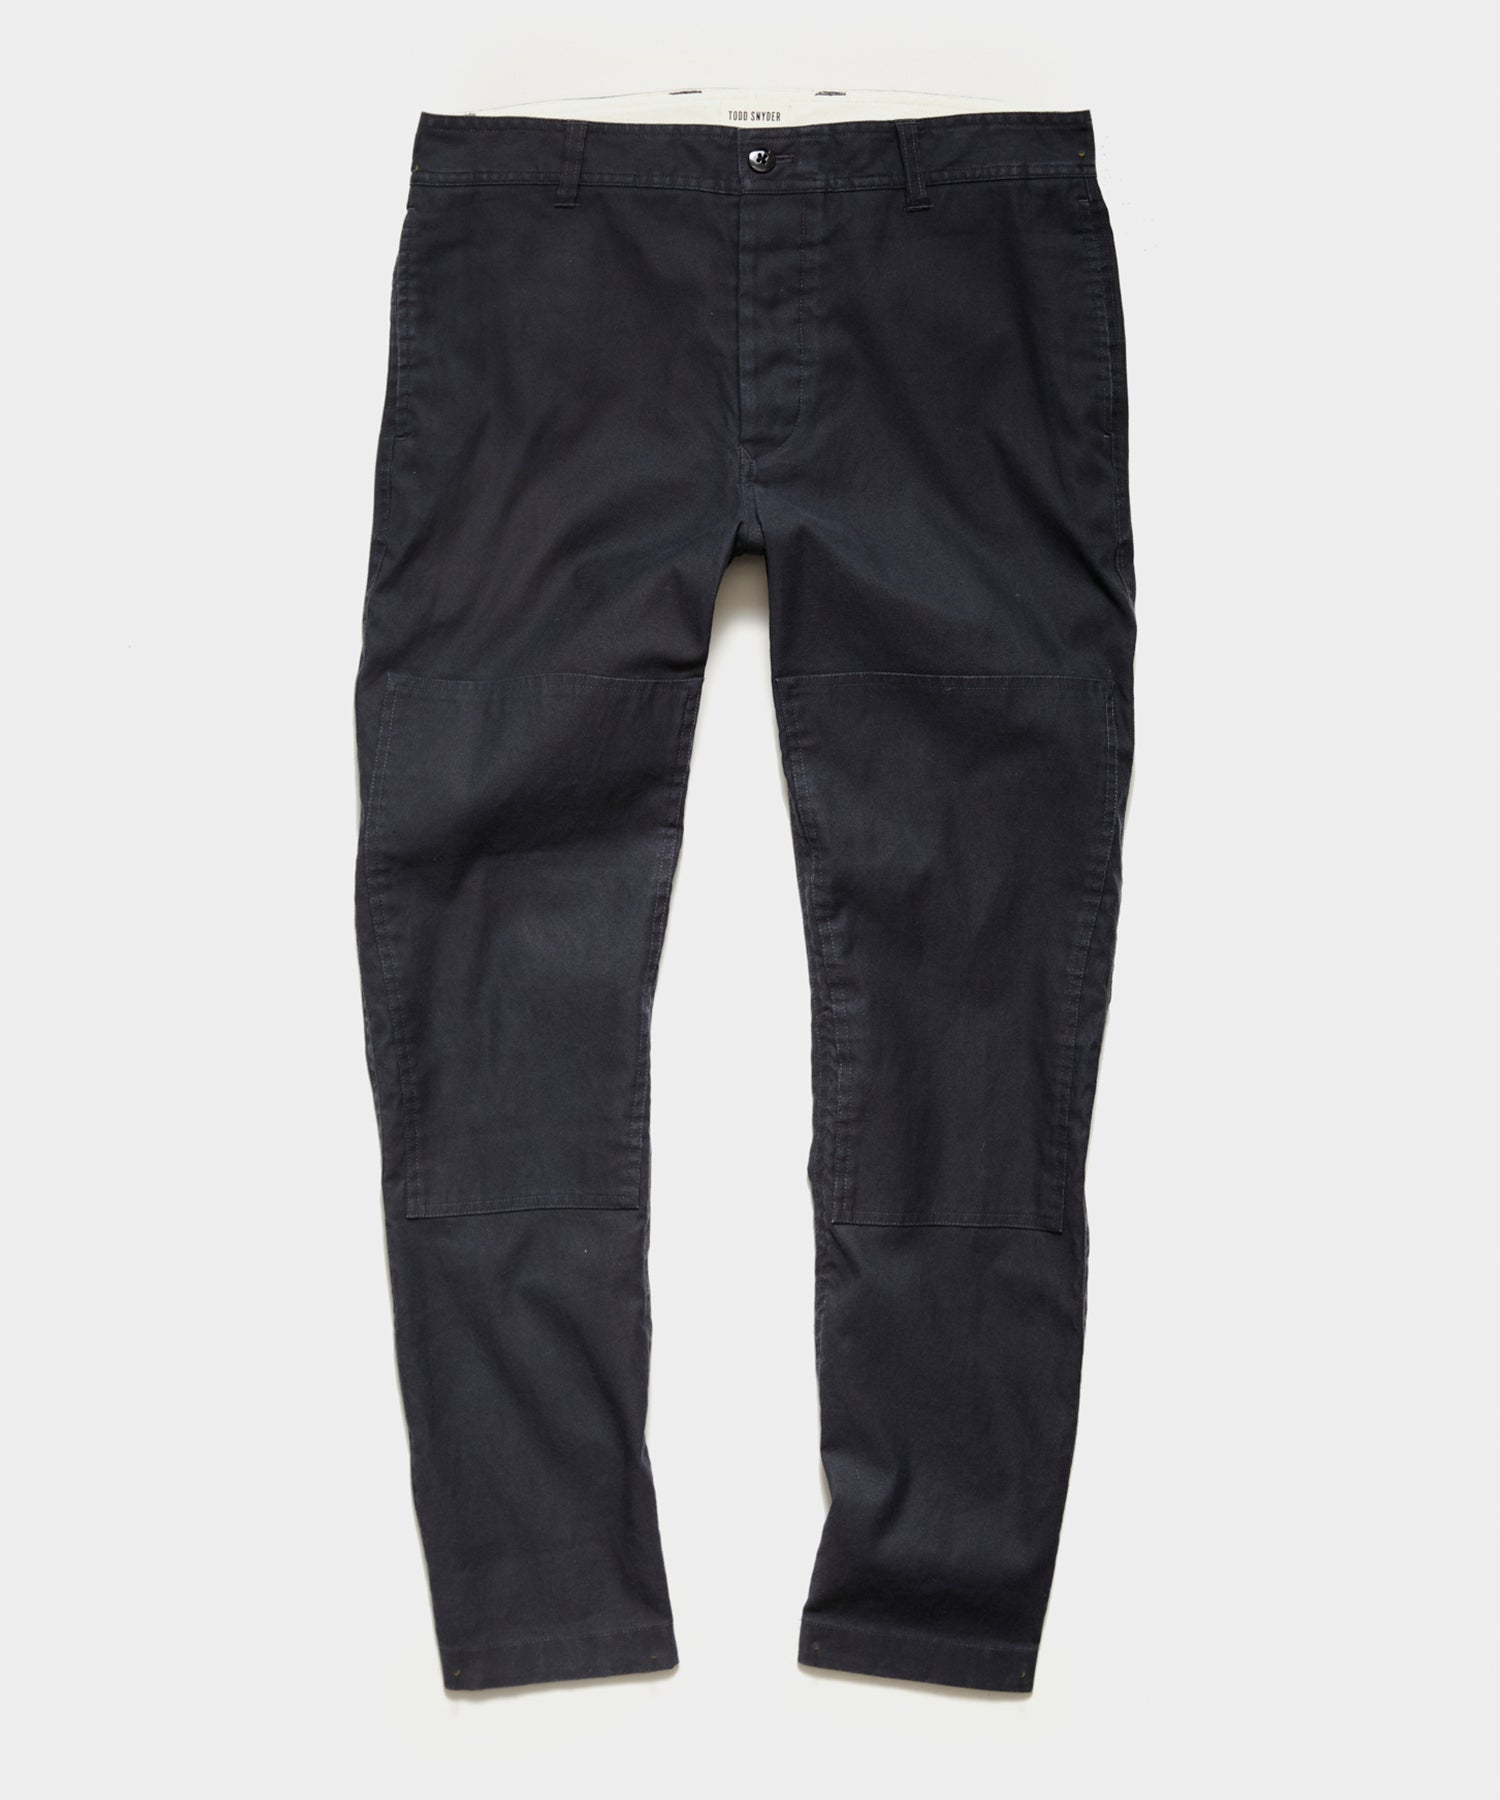 Japanese Workman's Pant in Black